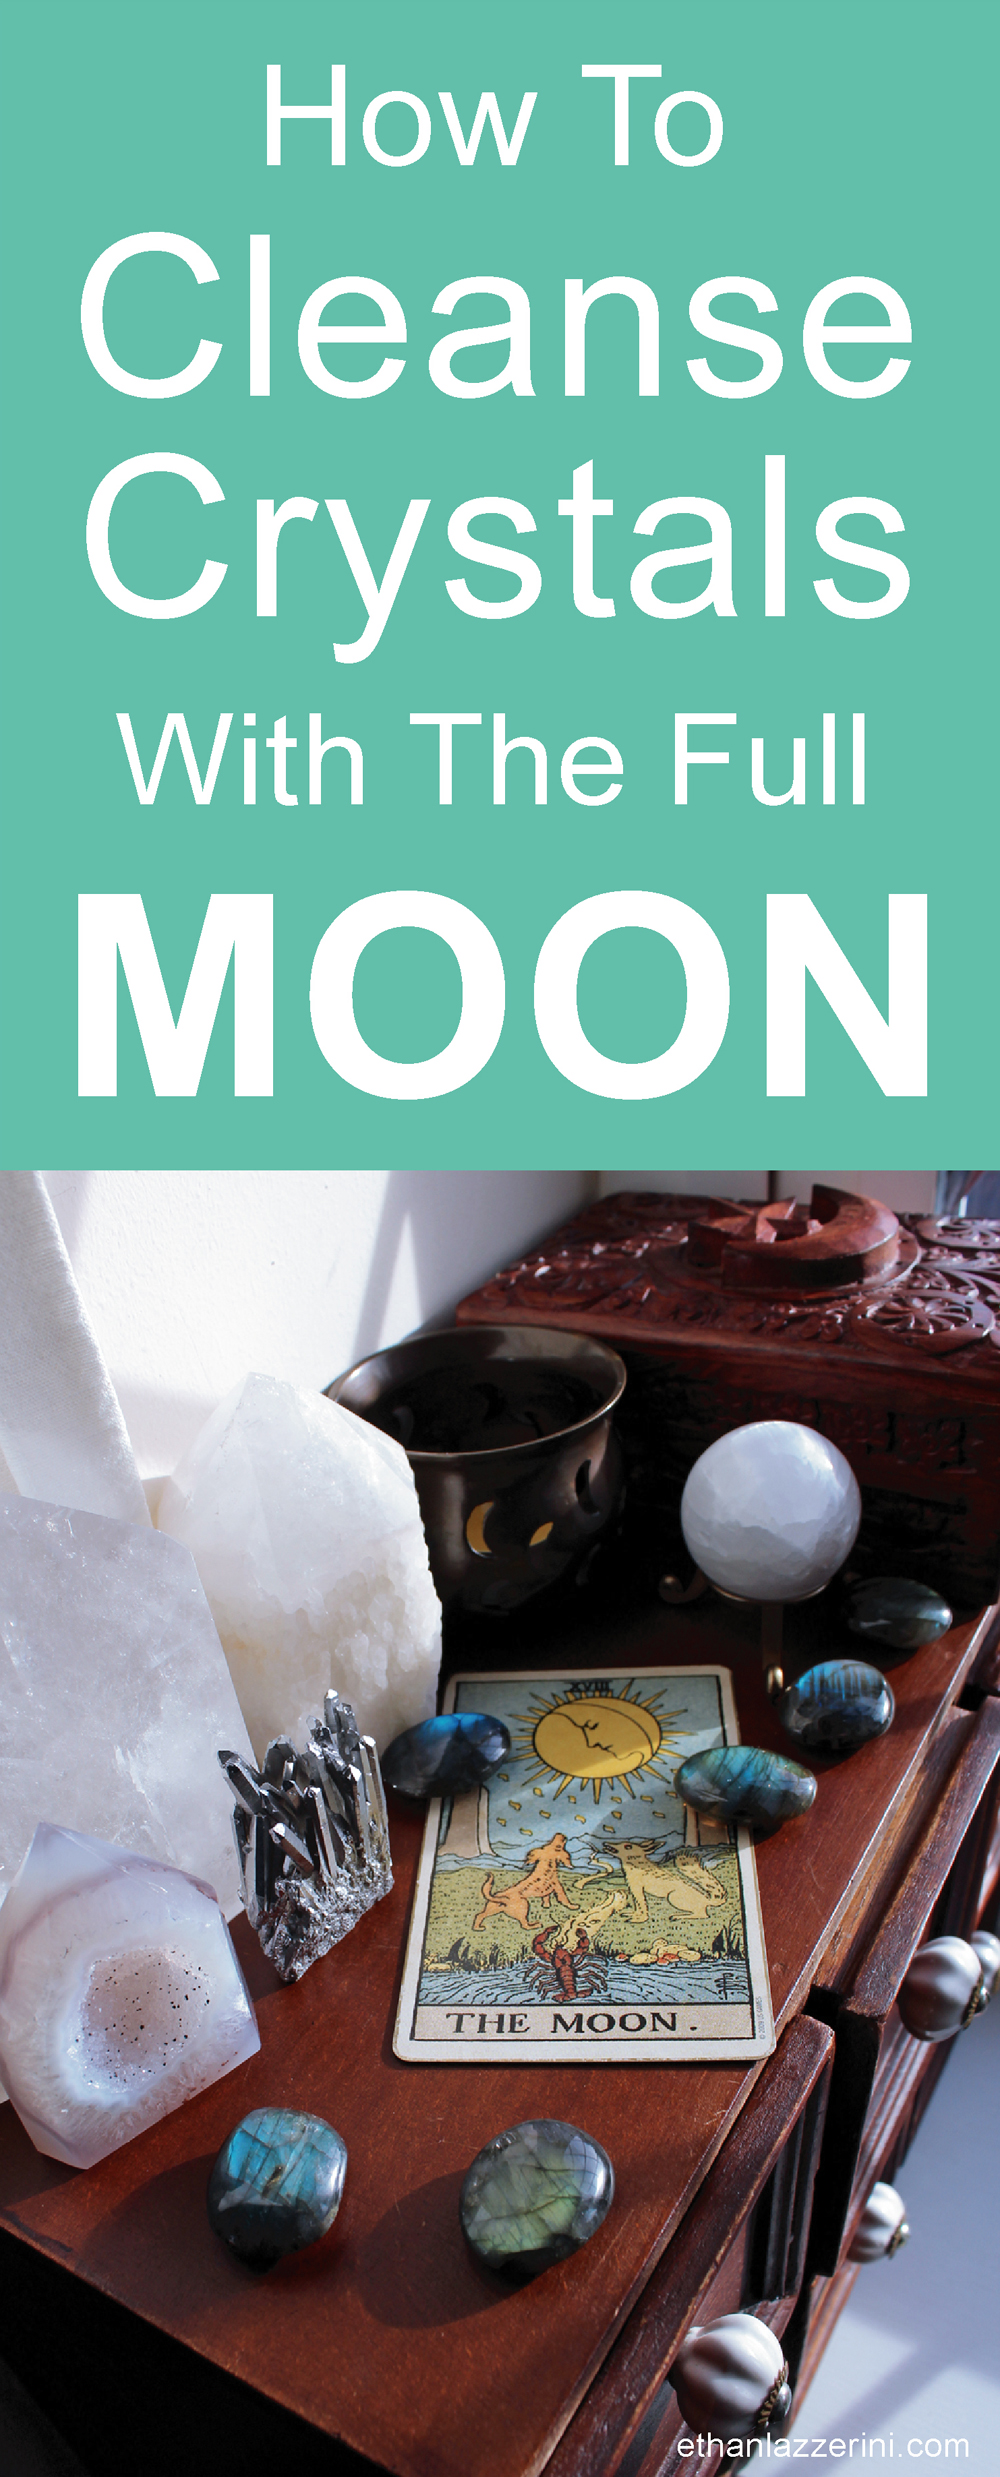 How to cleanse crystals with the full moon